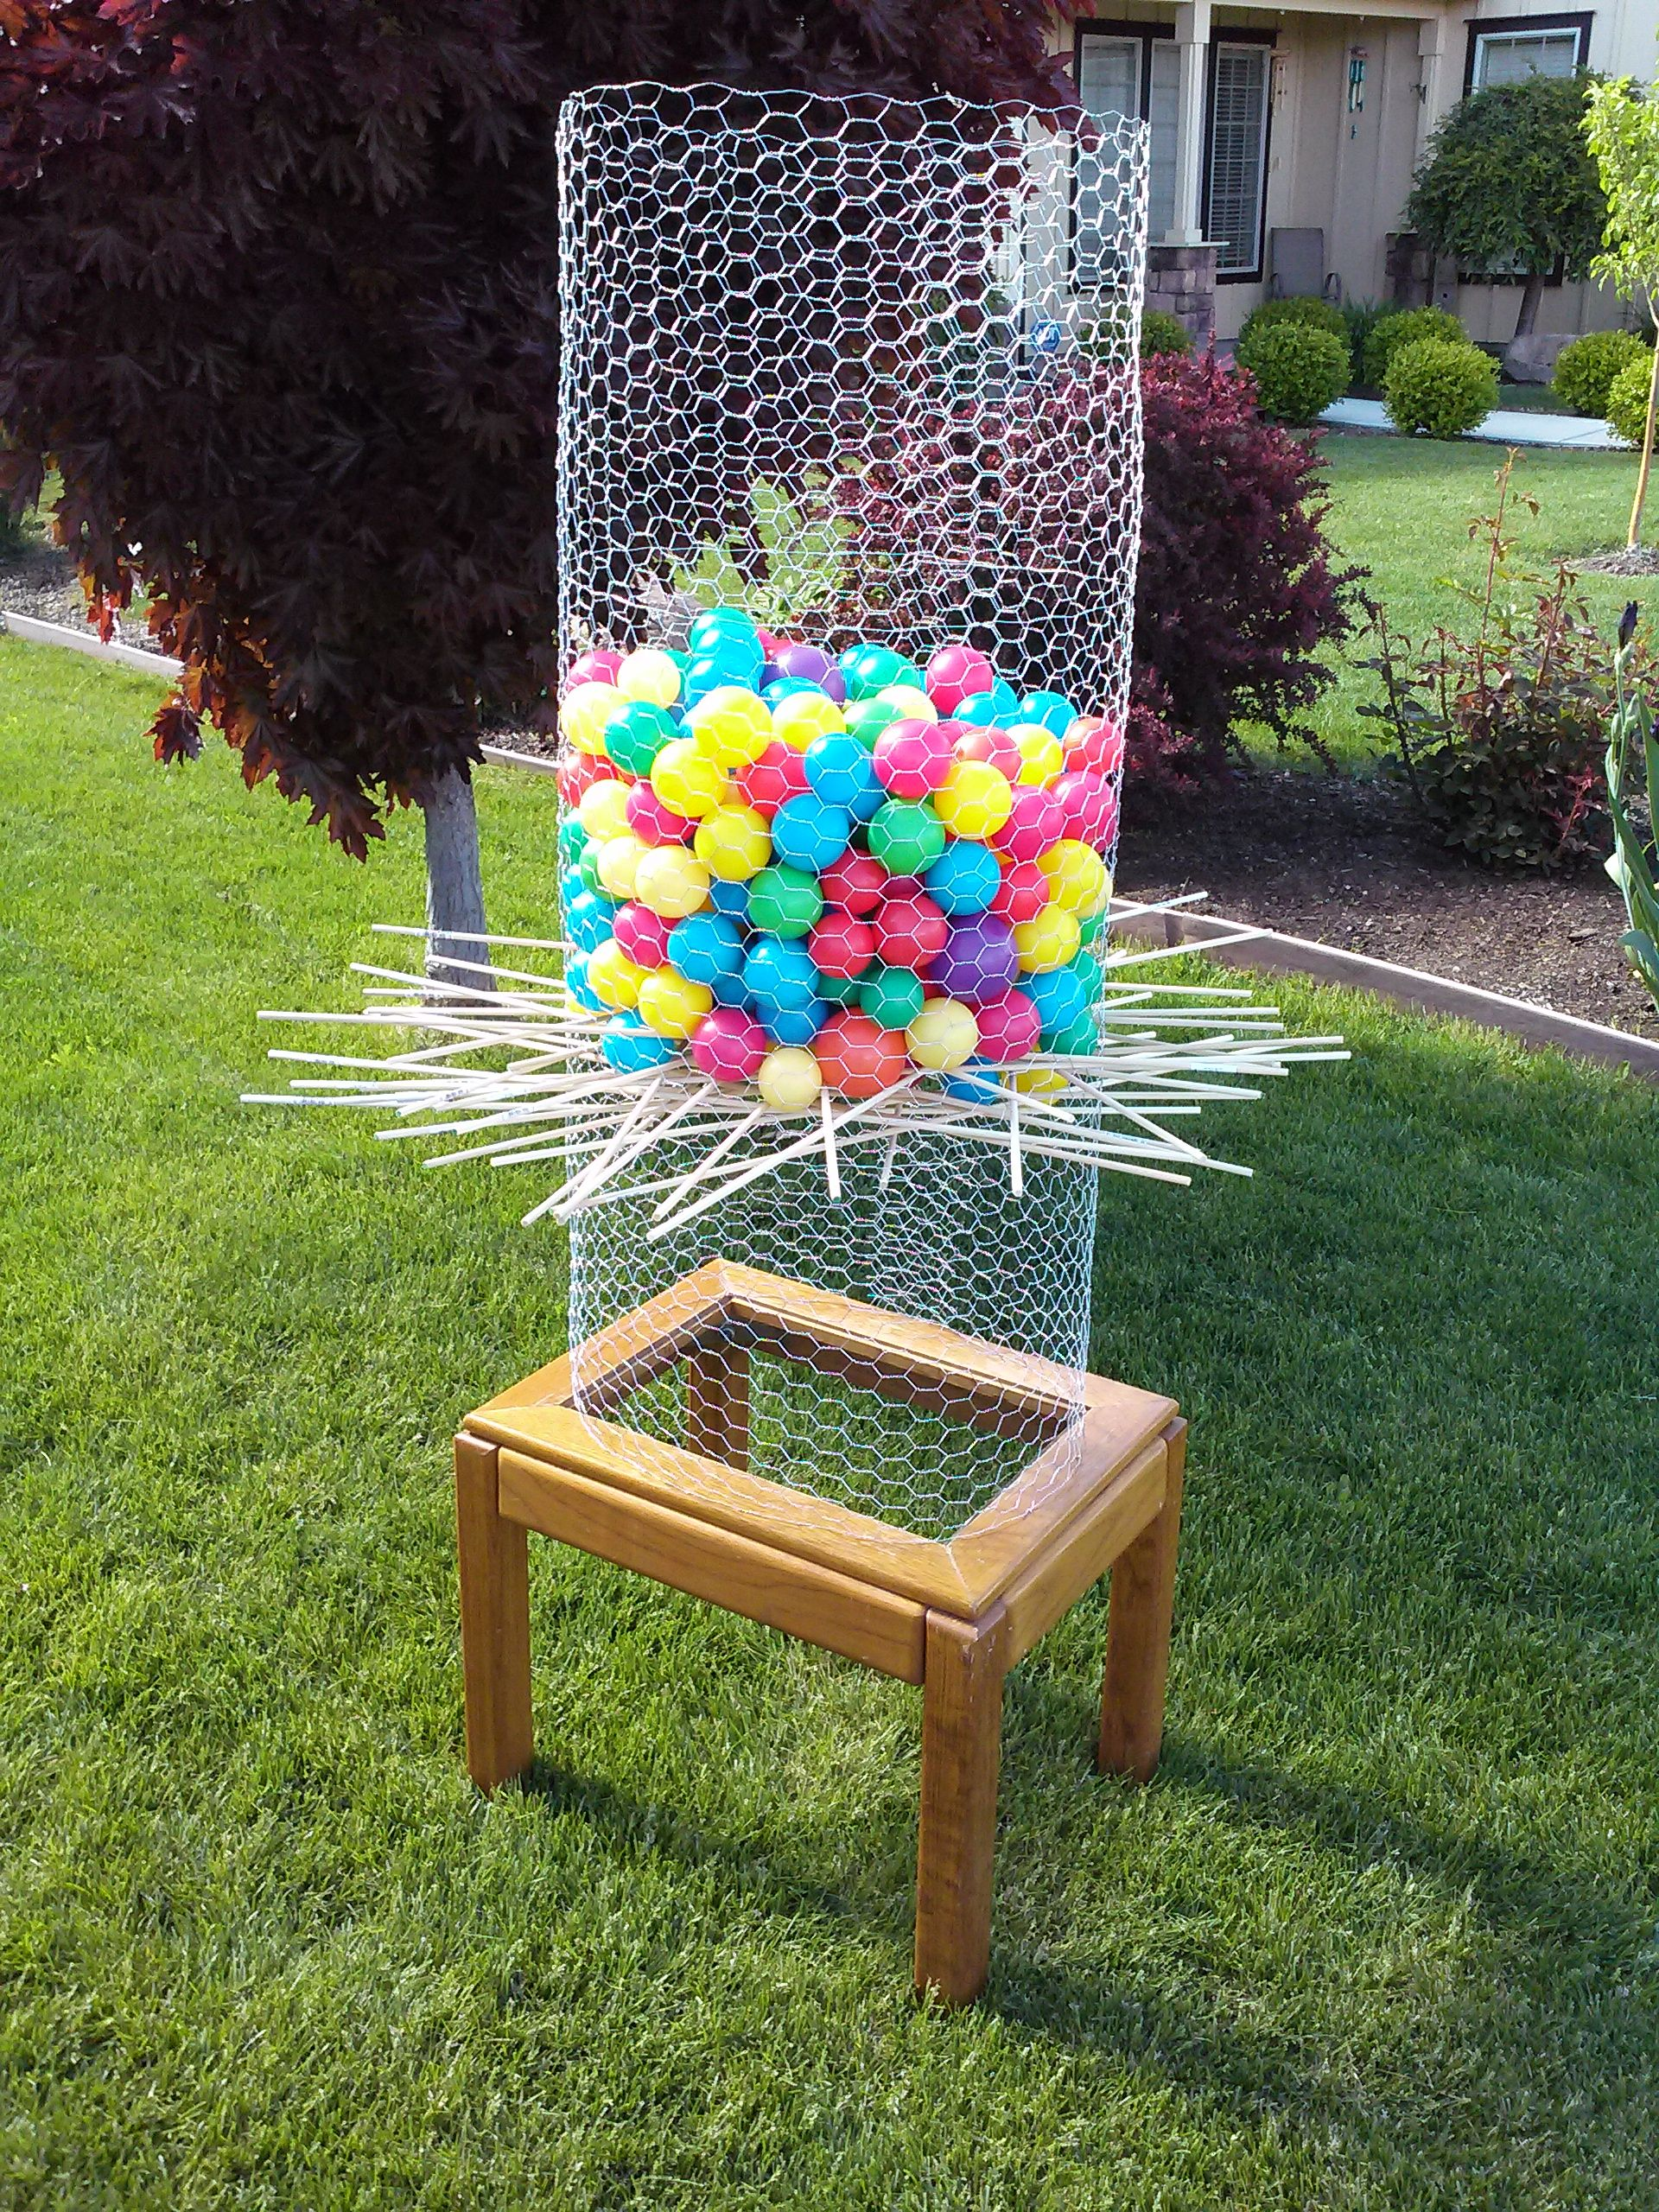 "Backyard Ker Plunk"" I made this DIY Ker Plunk game by upcycling"